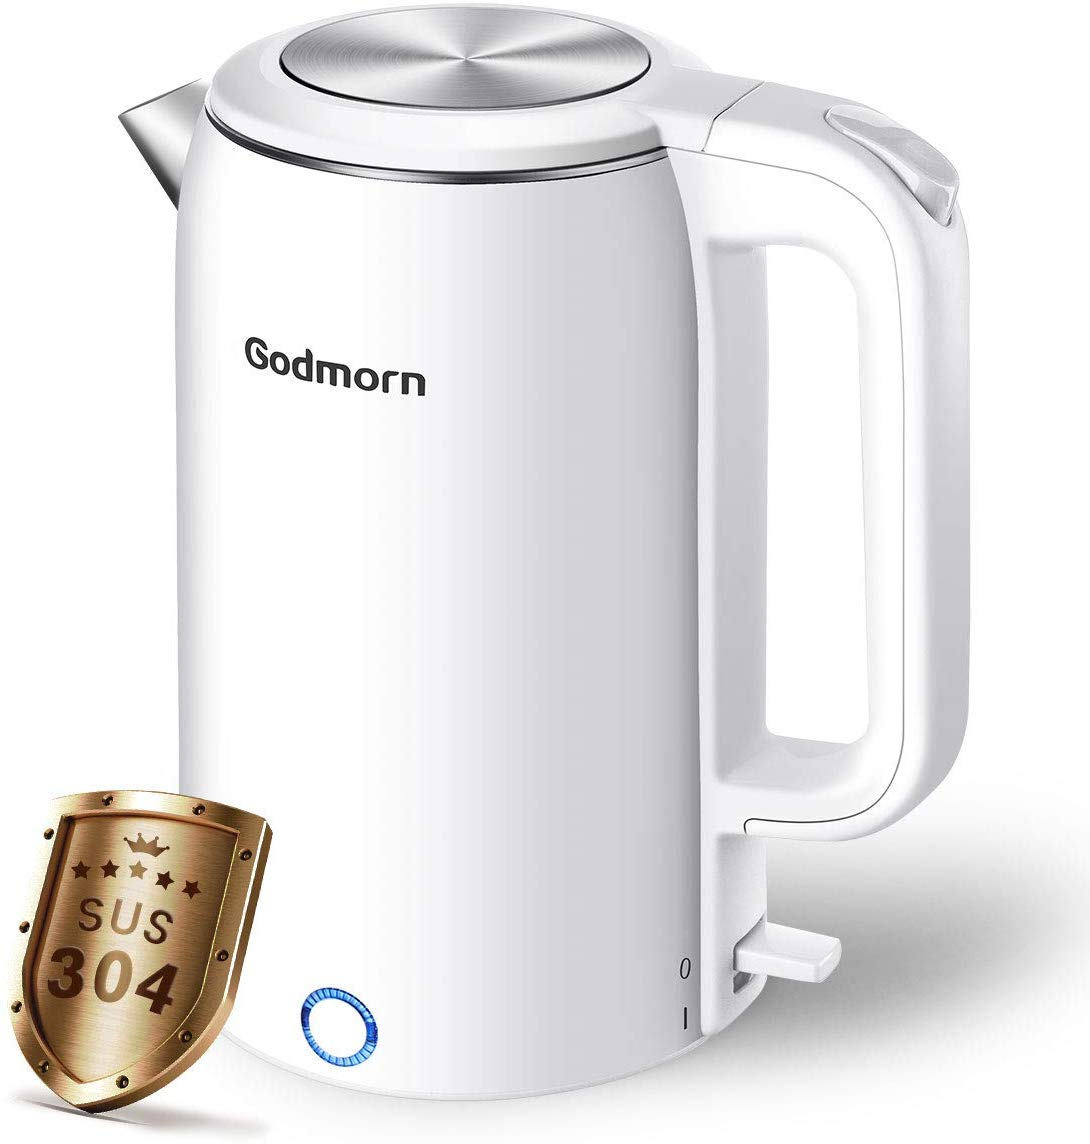 Godmorn Electric Kettle, 1.8L Double Wall Cool Touch Tea Kettle Cordless, 1500W